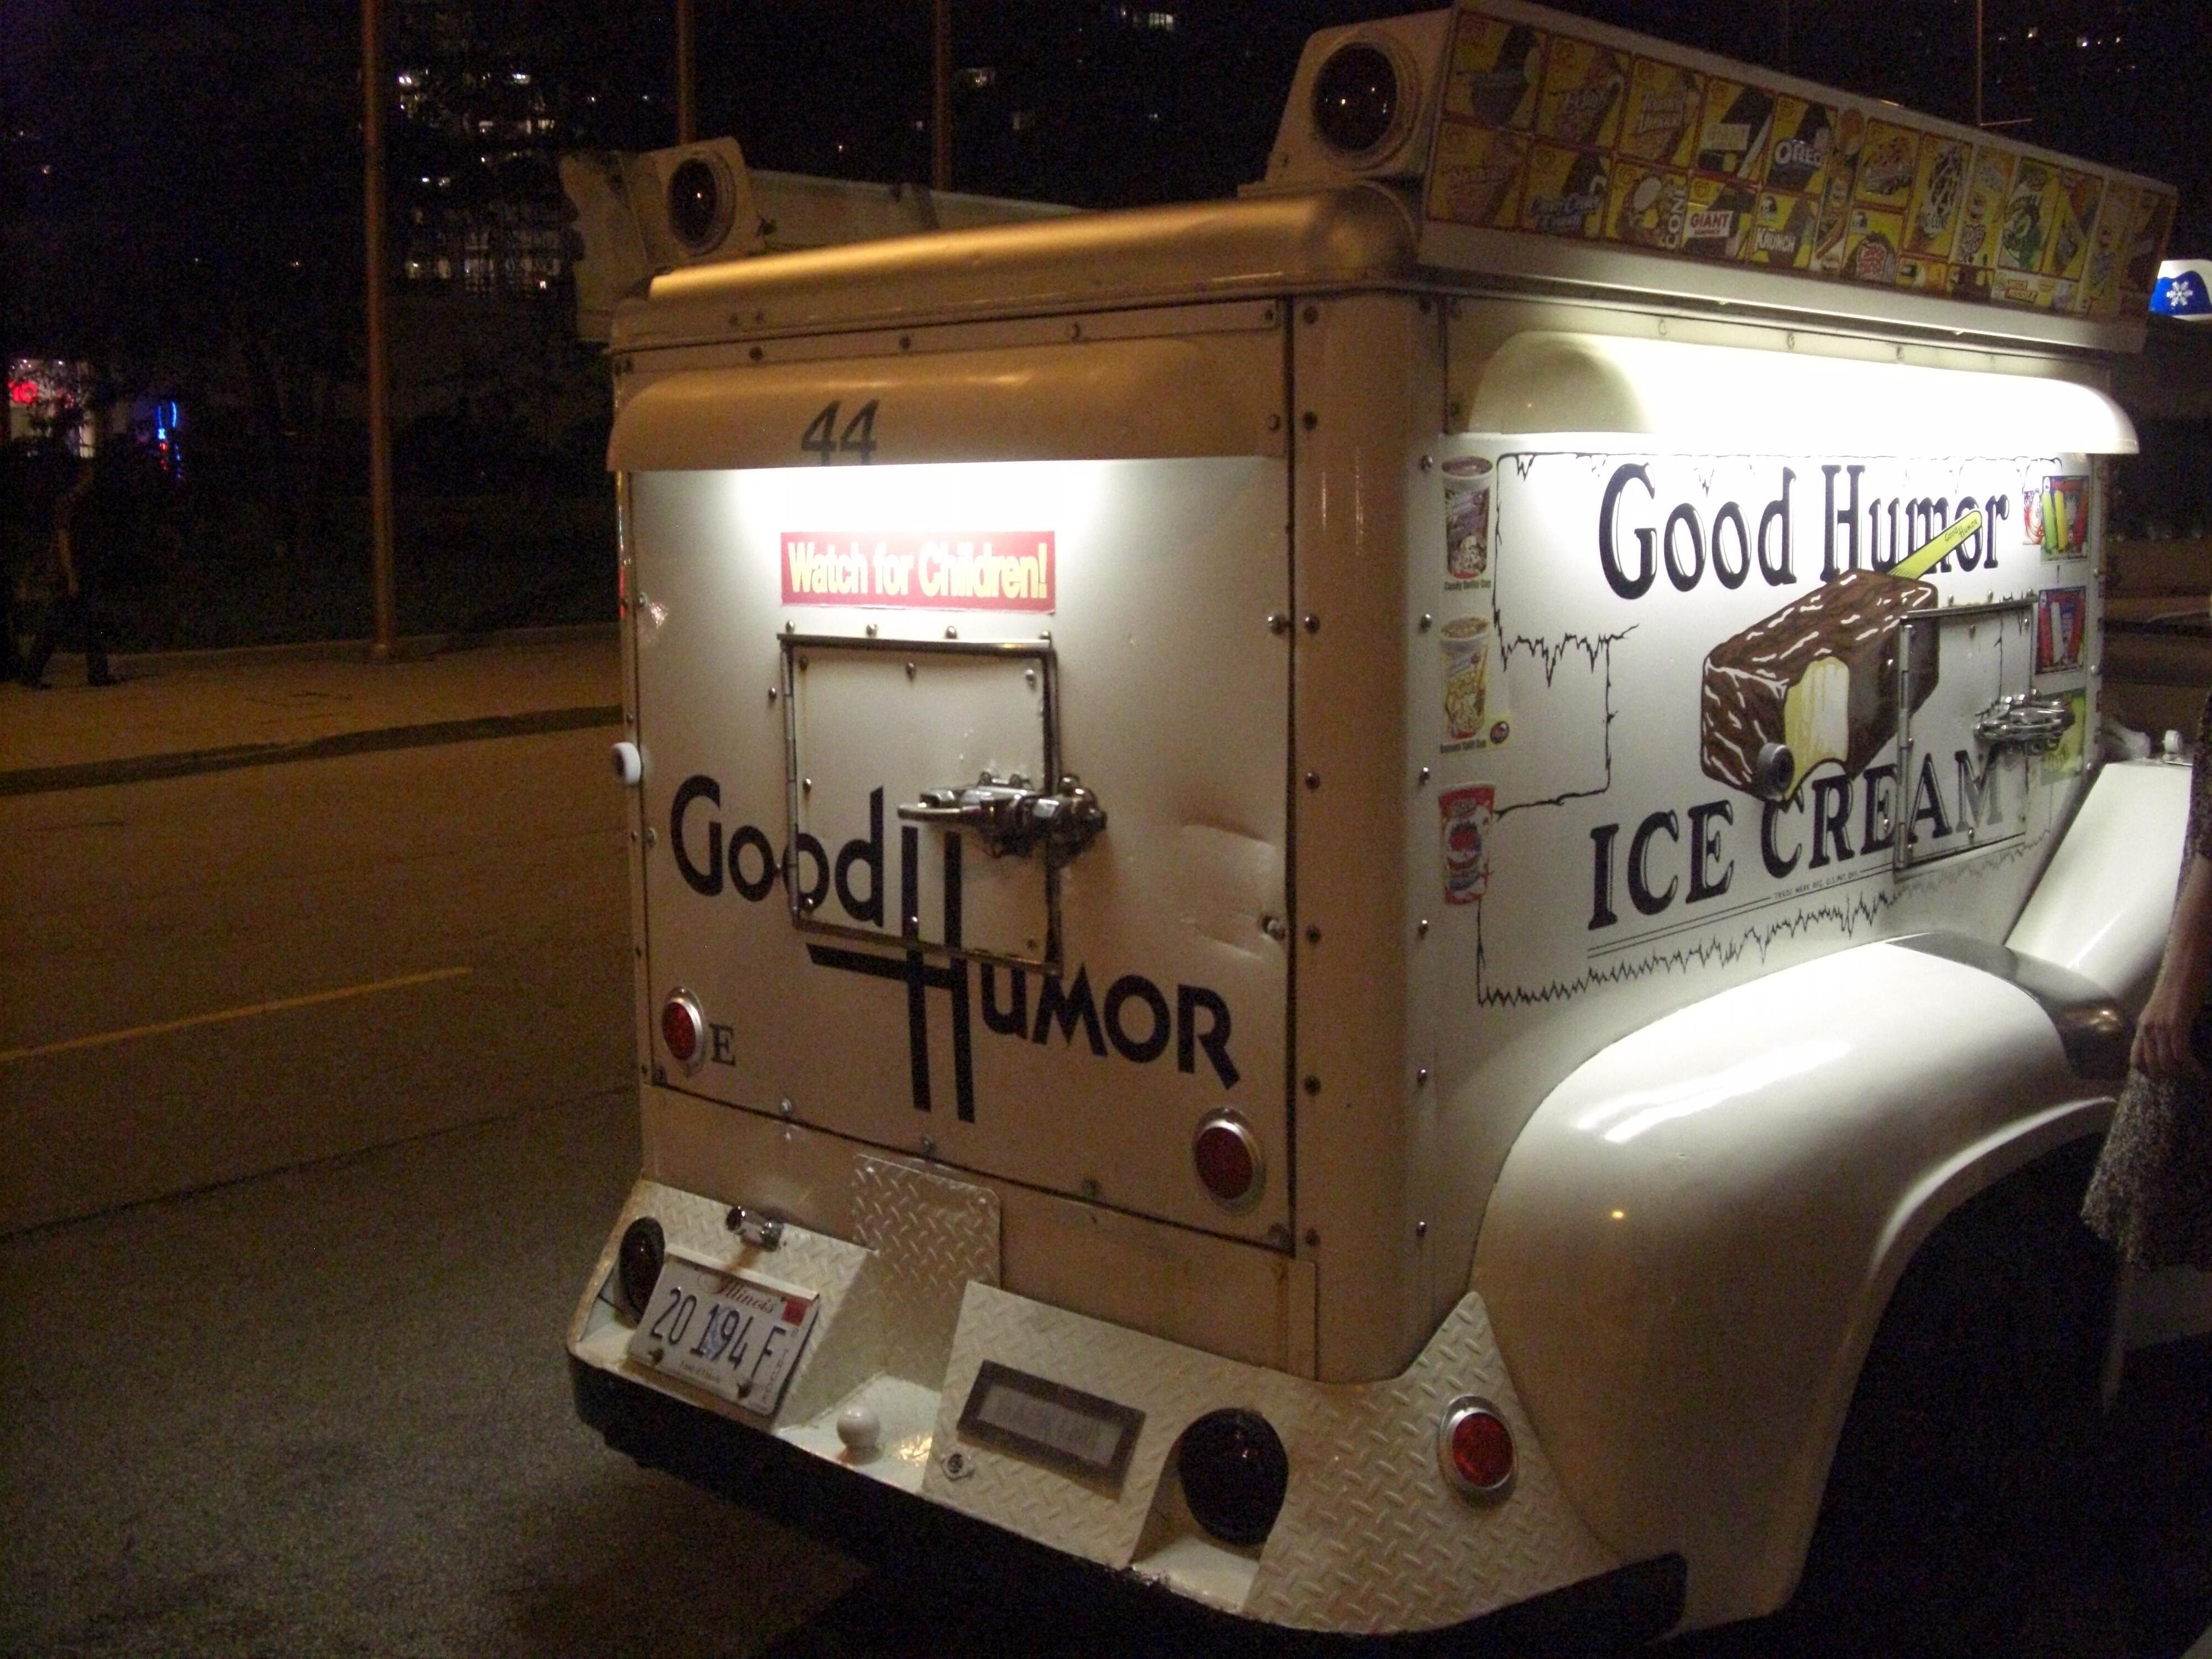 Good Humor Ice Cream truck in front of Sheraton Hotel Chicago